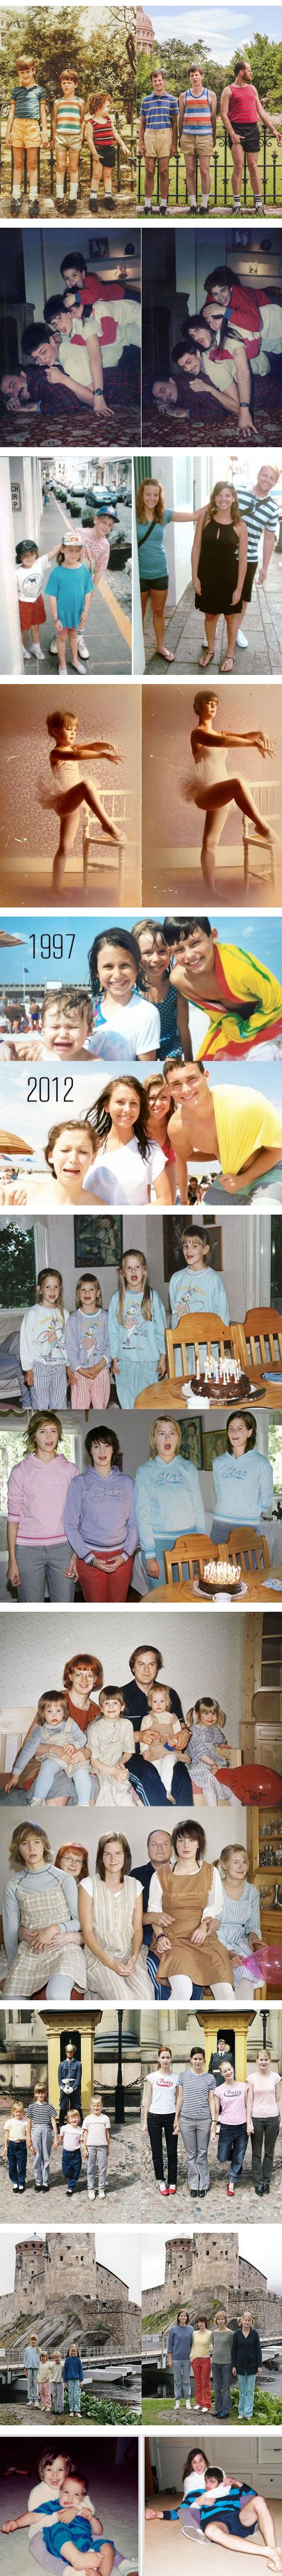 Recreating Childhood Photos,,,,my kids better do this for me someday.